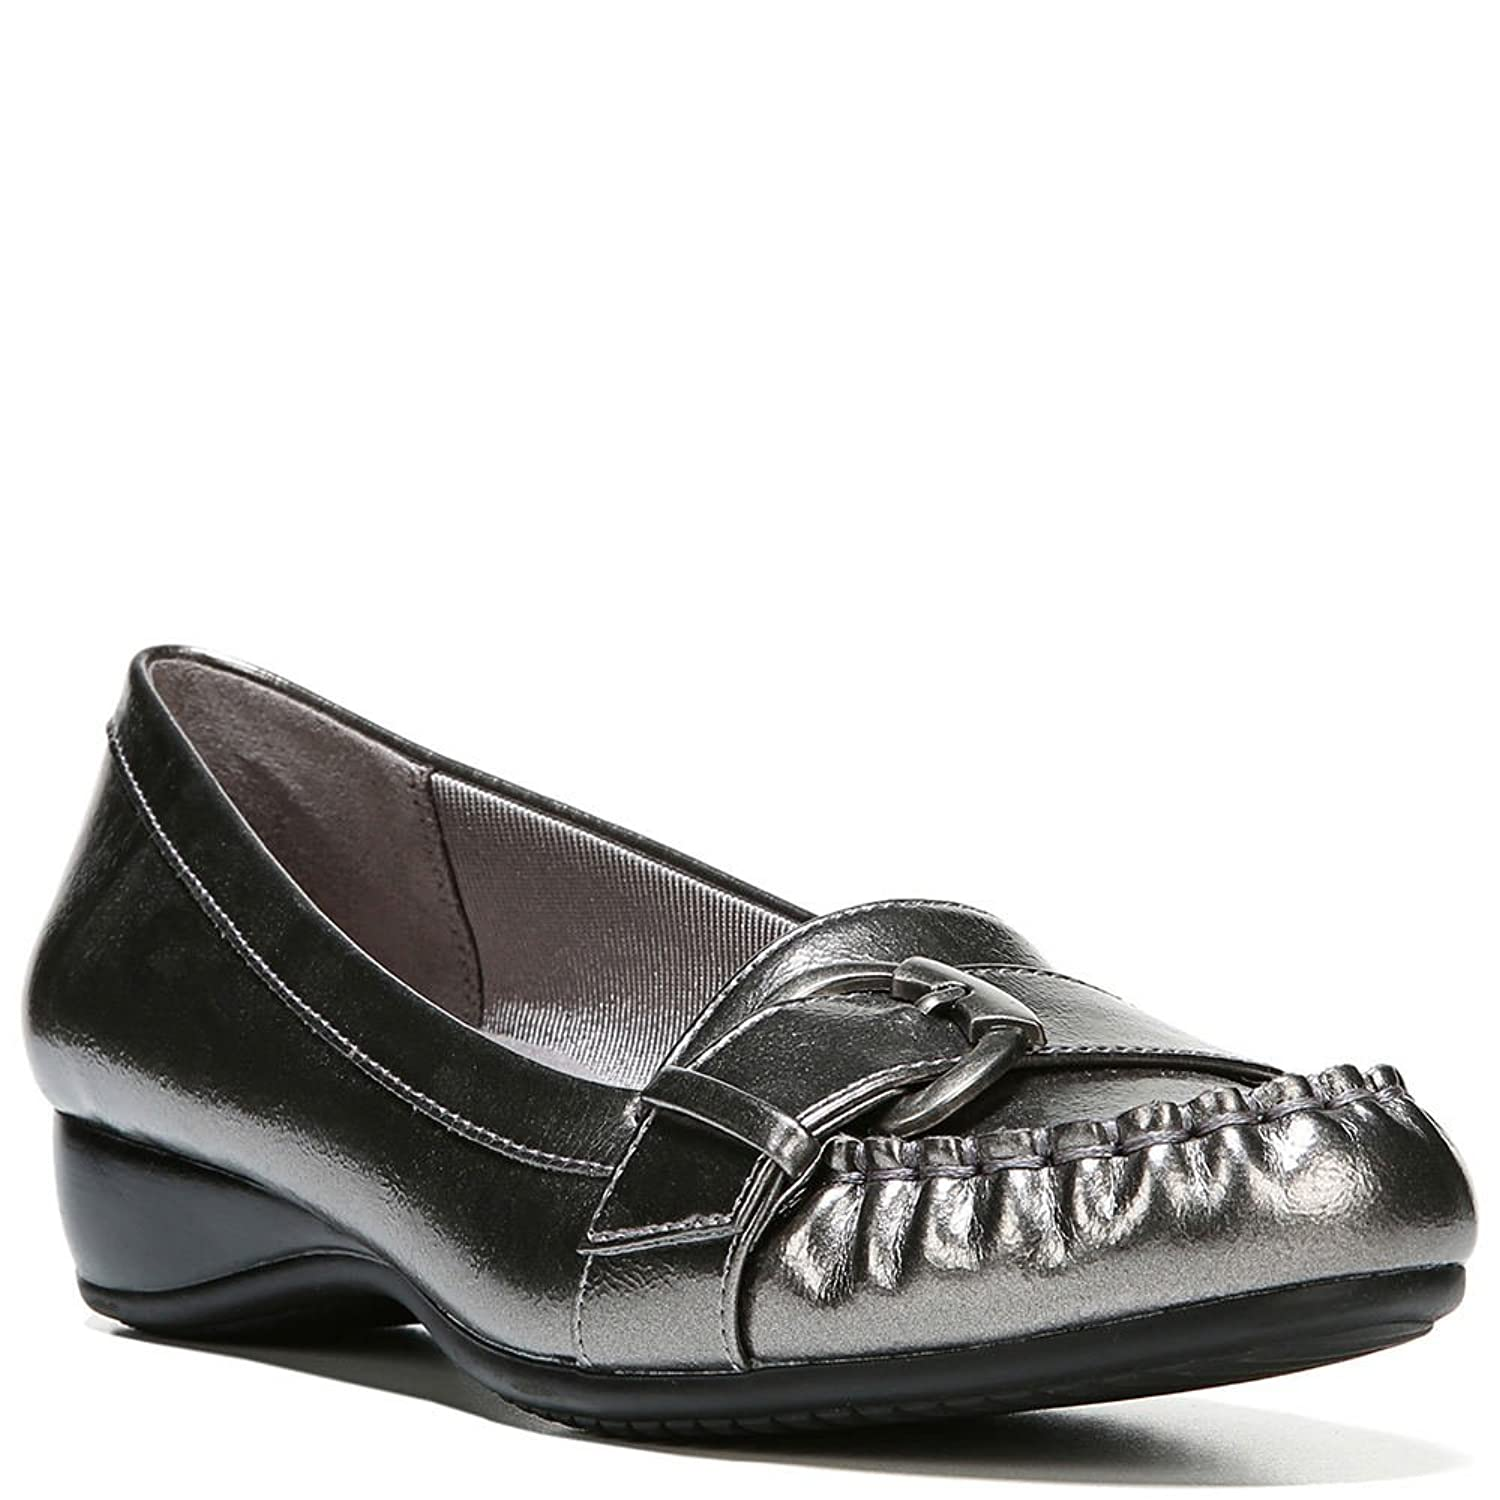 LifeStride Women's Dial Up Loafer Shoe